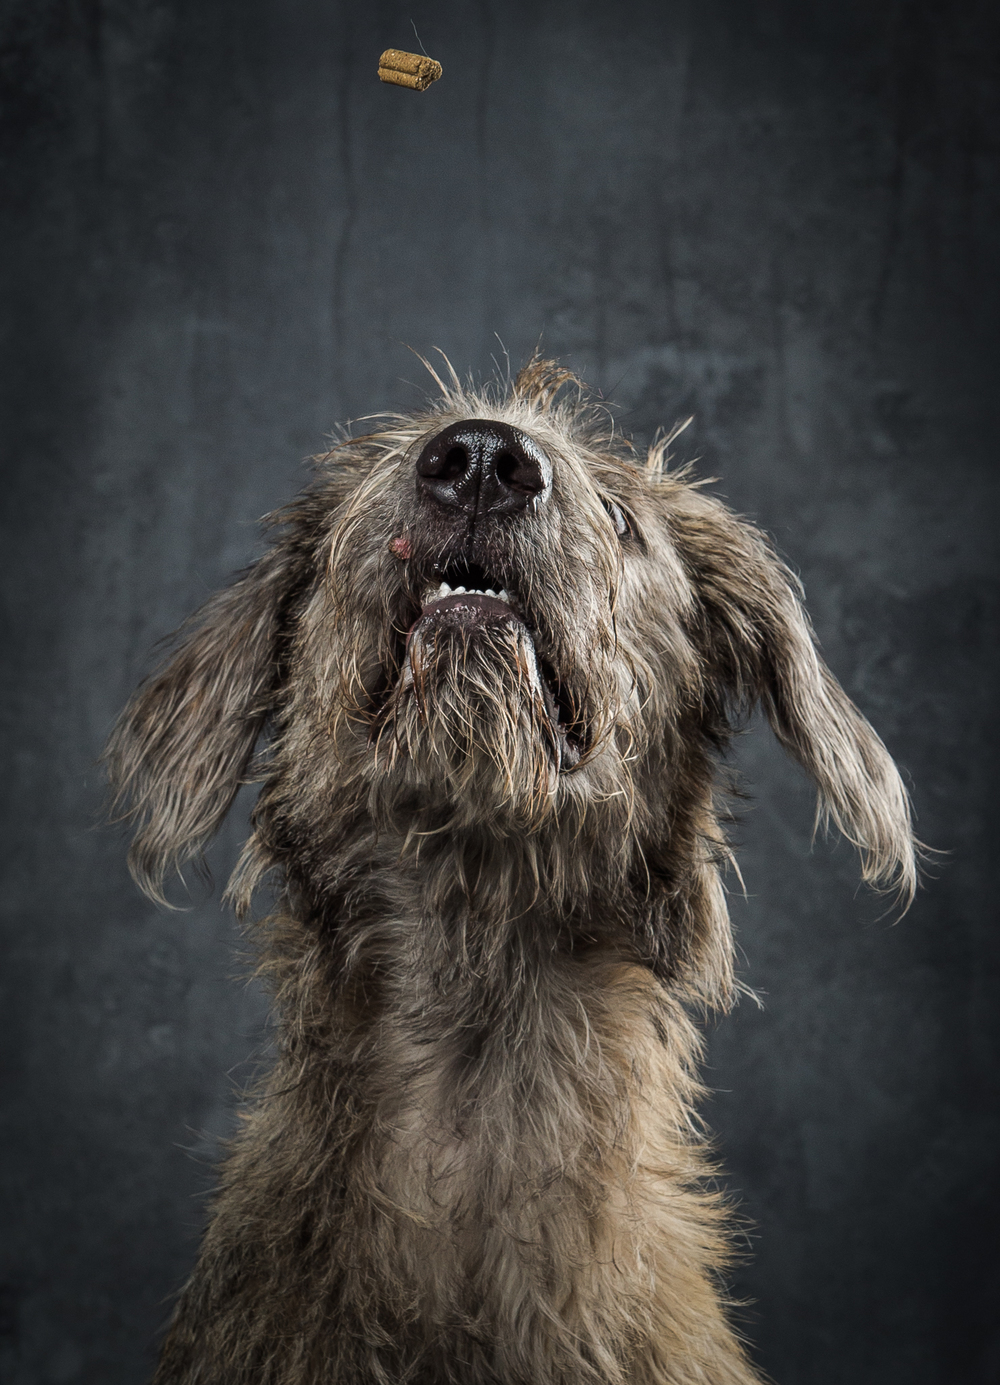 wolfhound-dog-portrait-photography-klaus-dyba